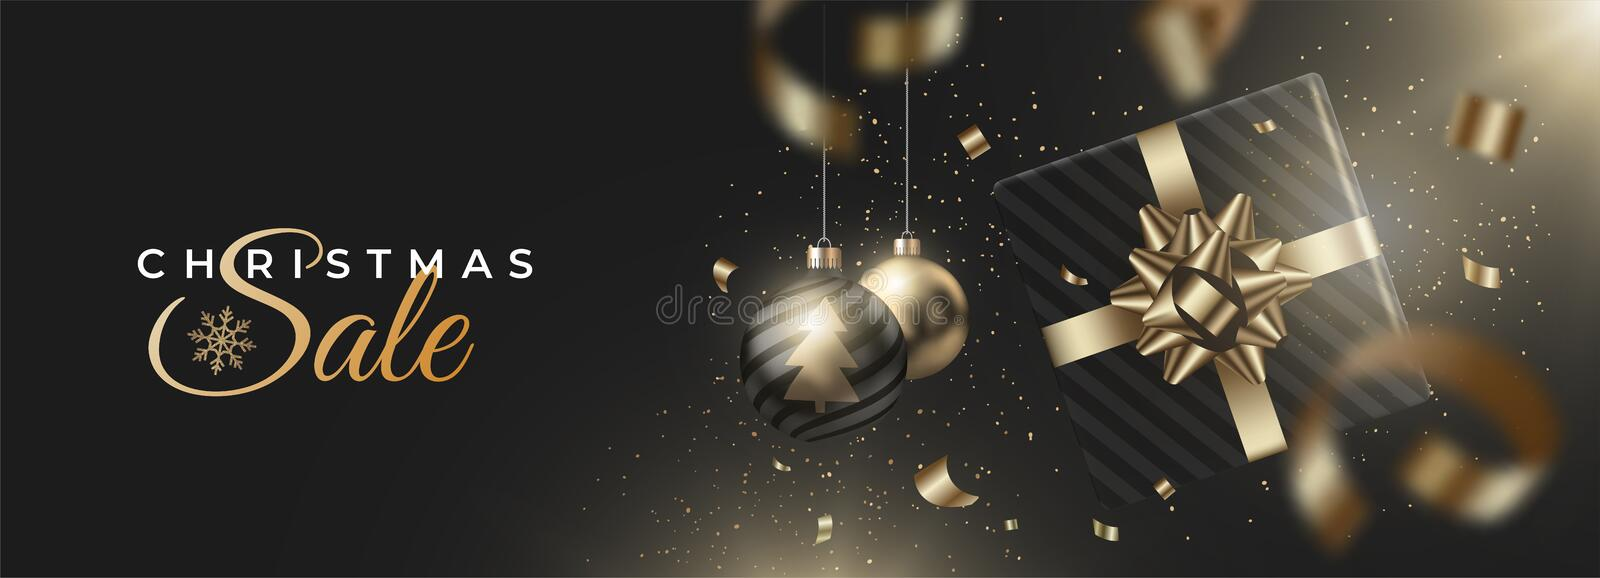 Happy New Year and Merry Christmas banner with balls and gifts, tinsel on dark background. Season winter. royalty free stock photos